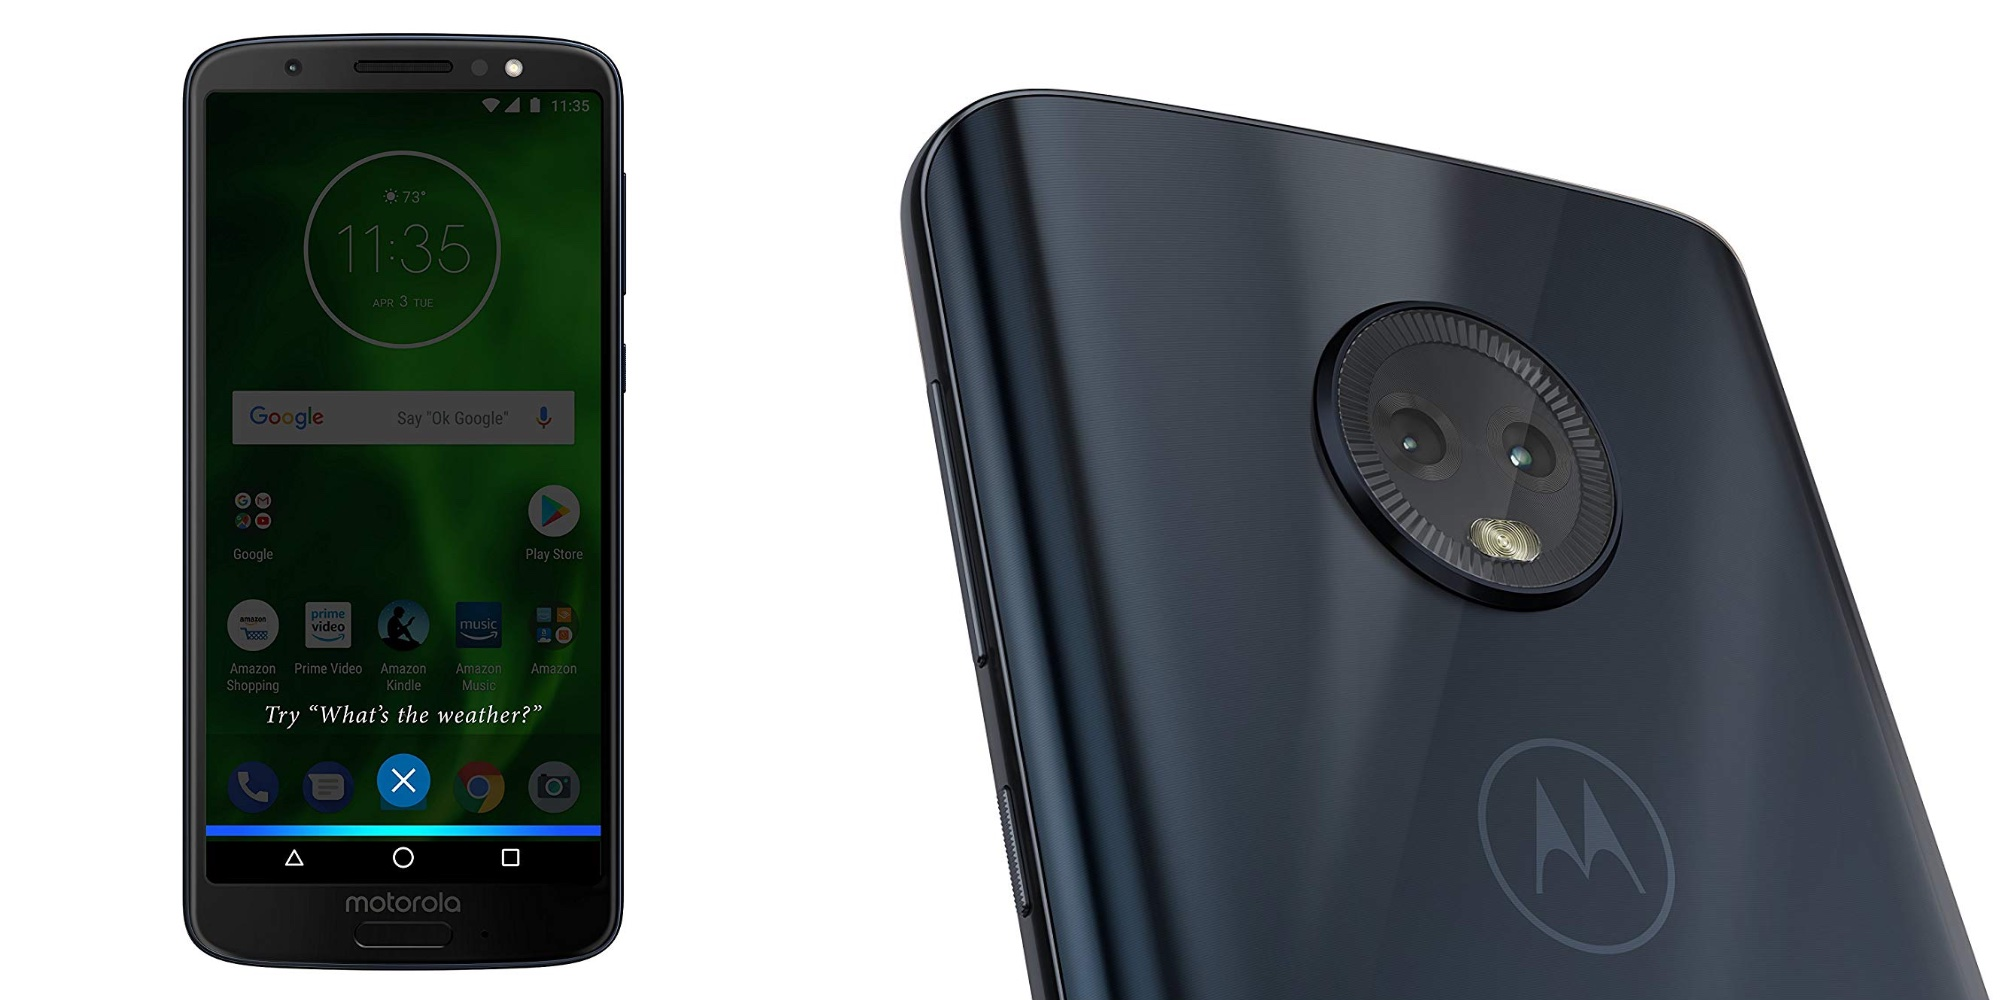 Lock in a 20% discount on Amazon's Prime Exclusive Moto G6 Smartphone at $160 shipped